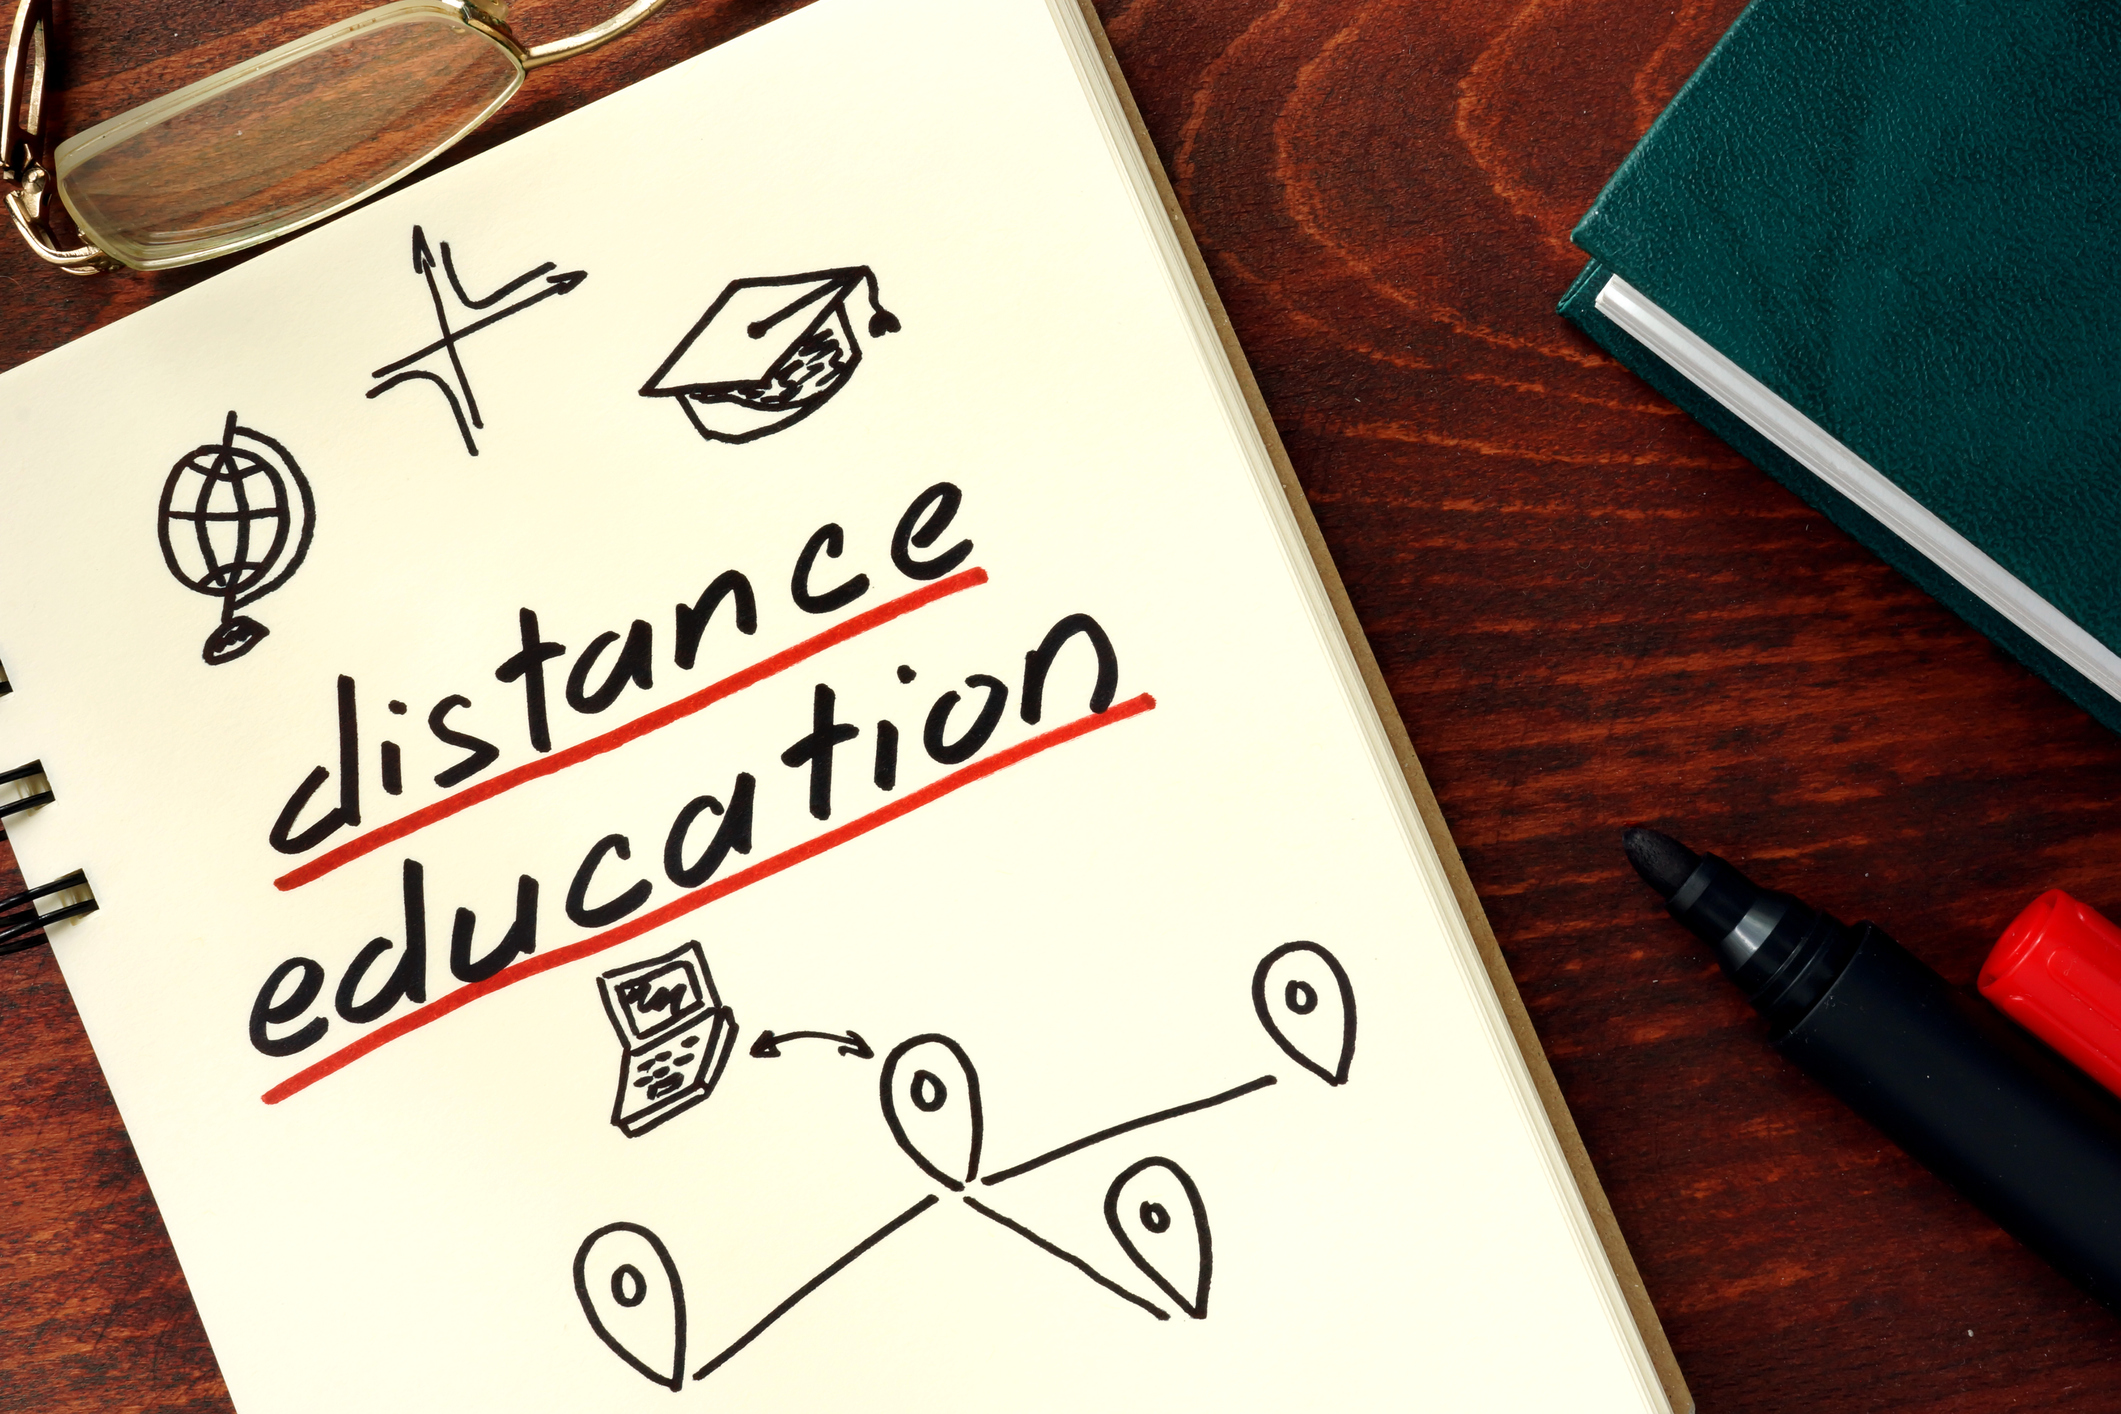 Distance education in telanagana